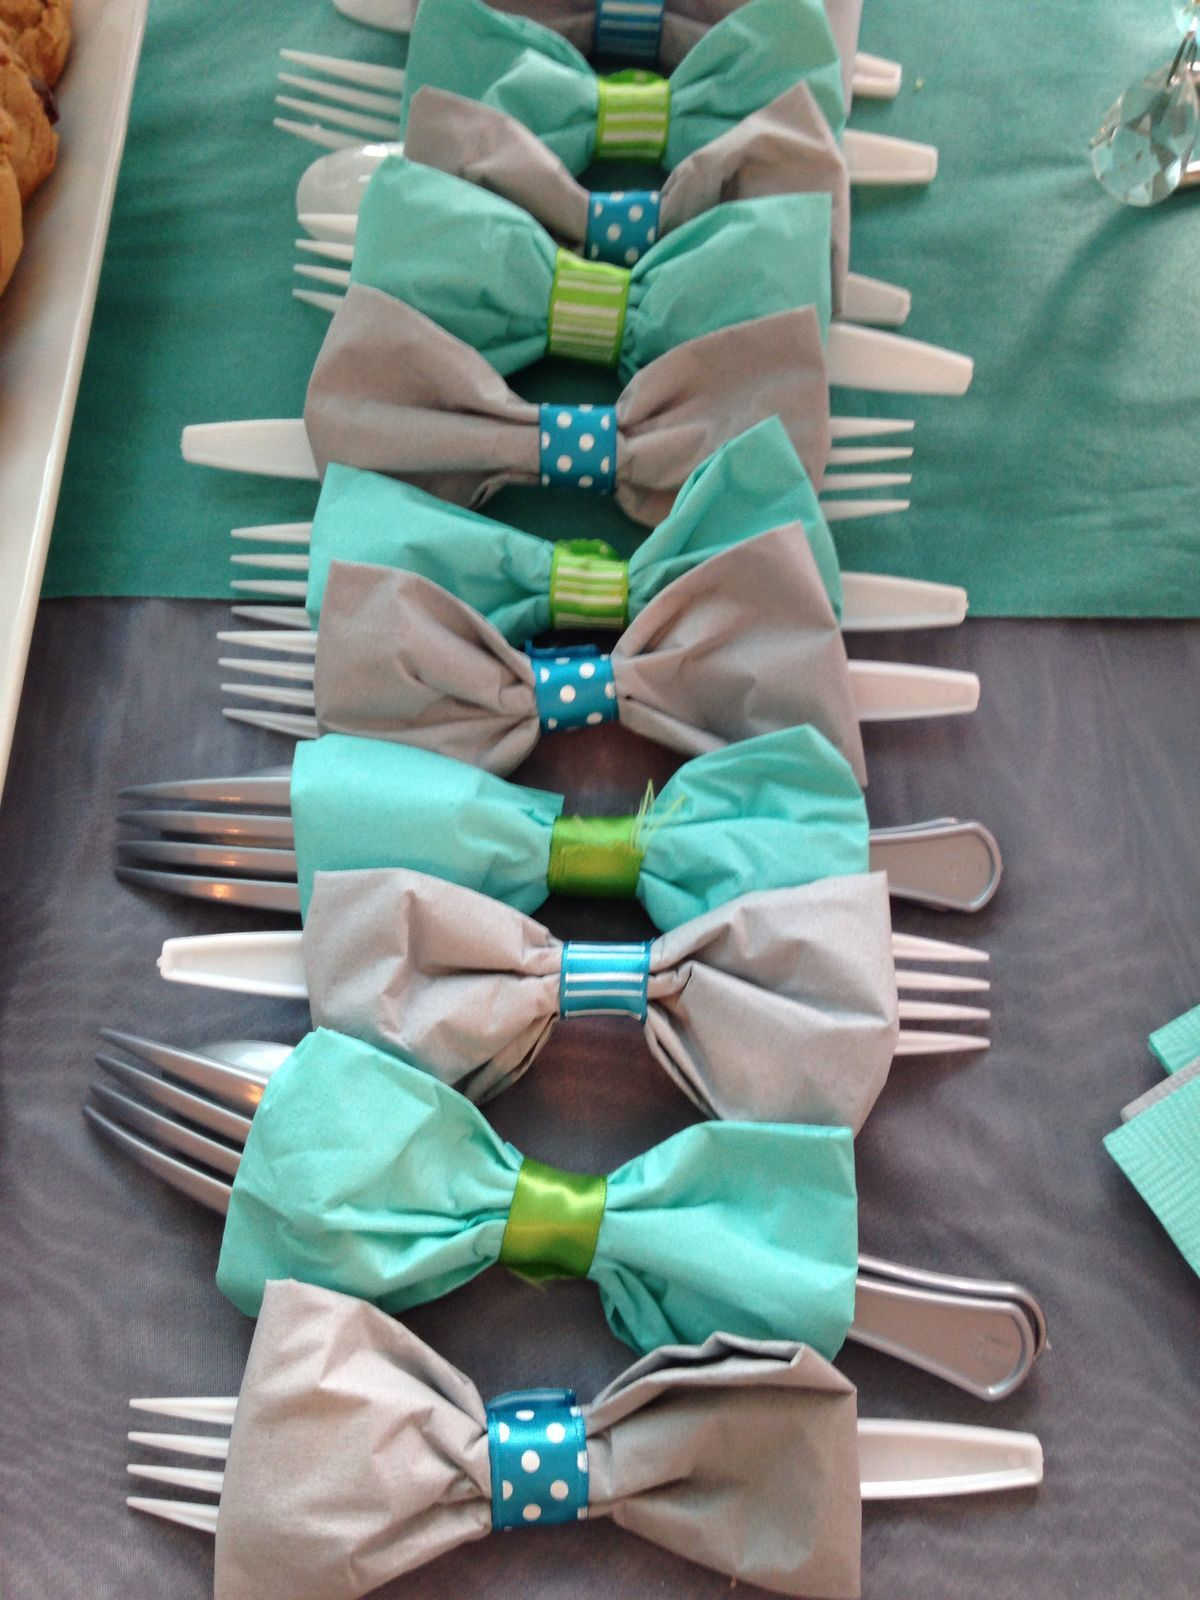 Bow tie table decorations - dress up each placesetting with a fun flatware wrap idea #babyshowerideas